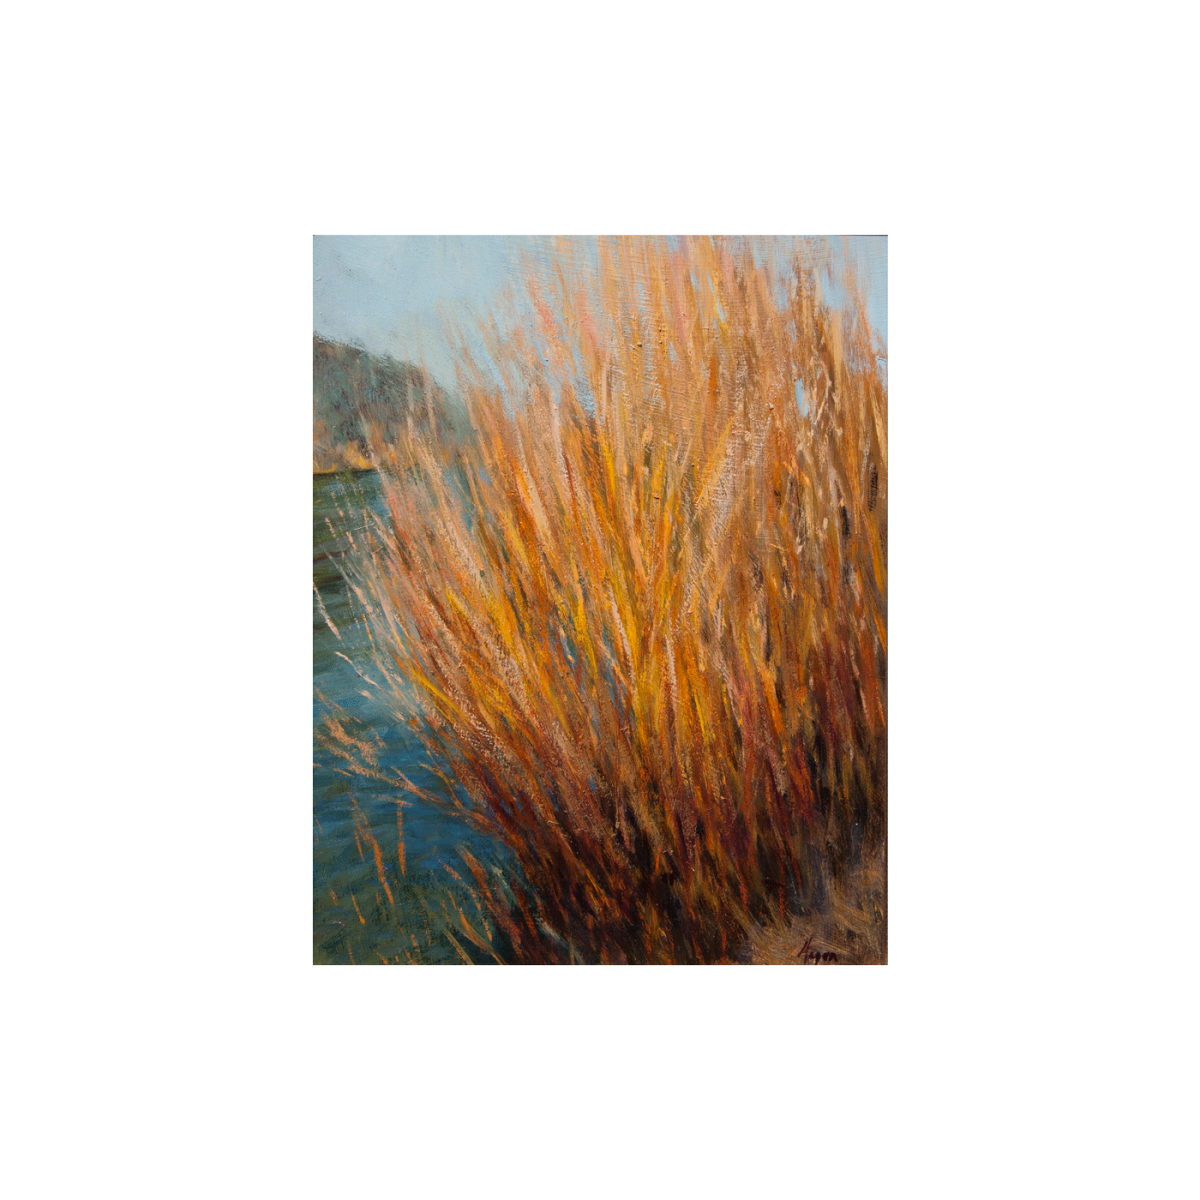 Rio Willows painting by Peter Hagen